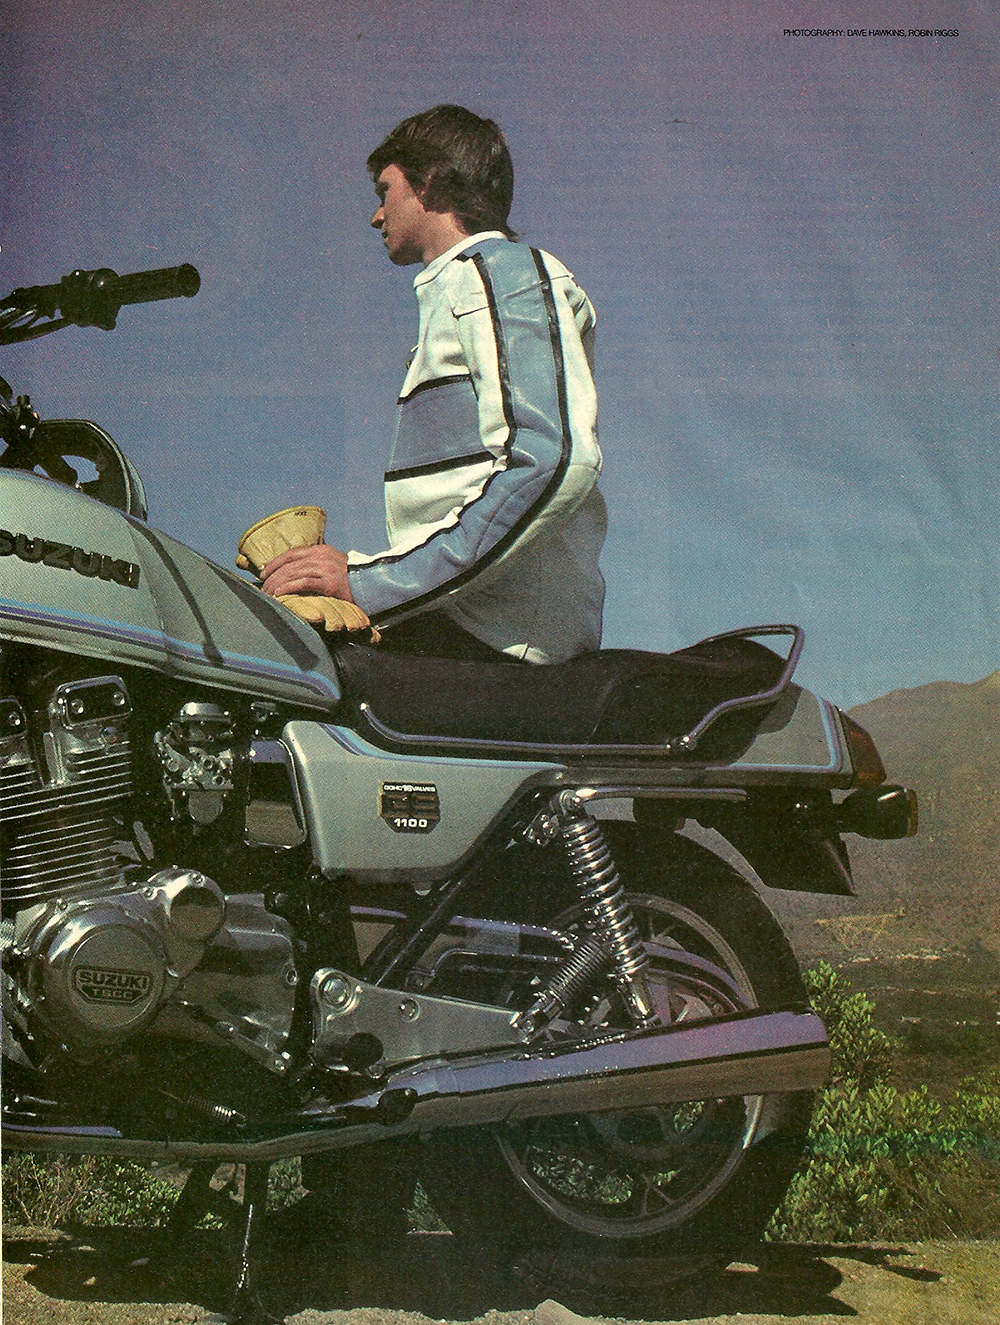 1980 Suzuki GS1100 ET road test 02.jpg